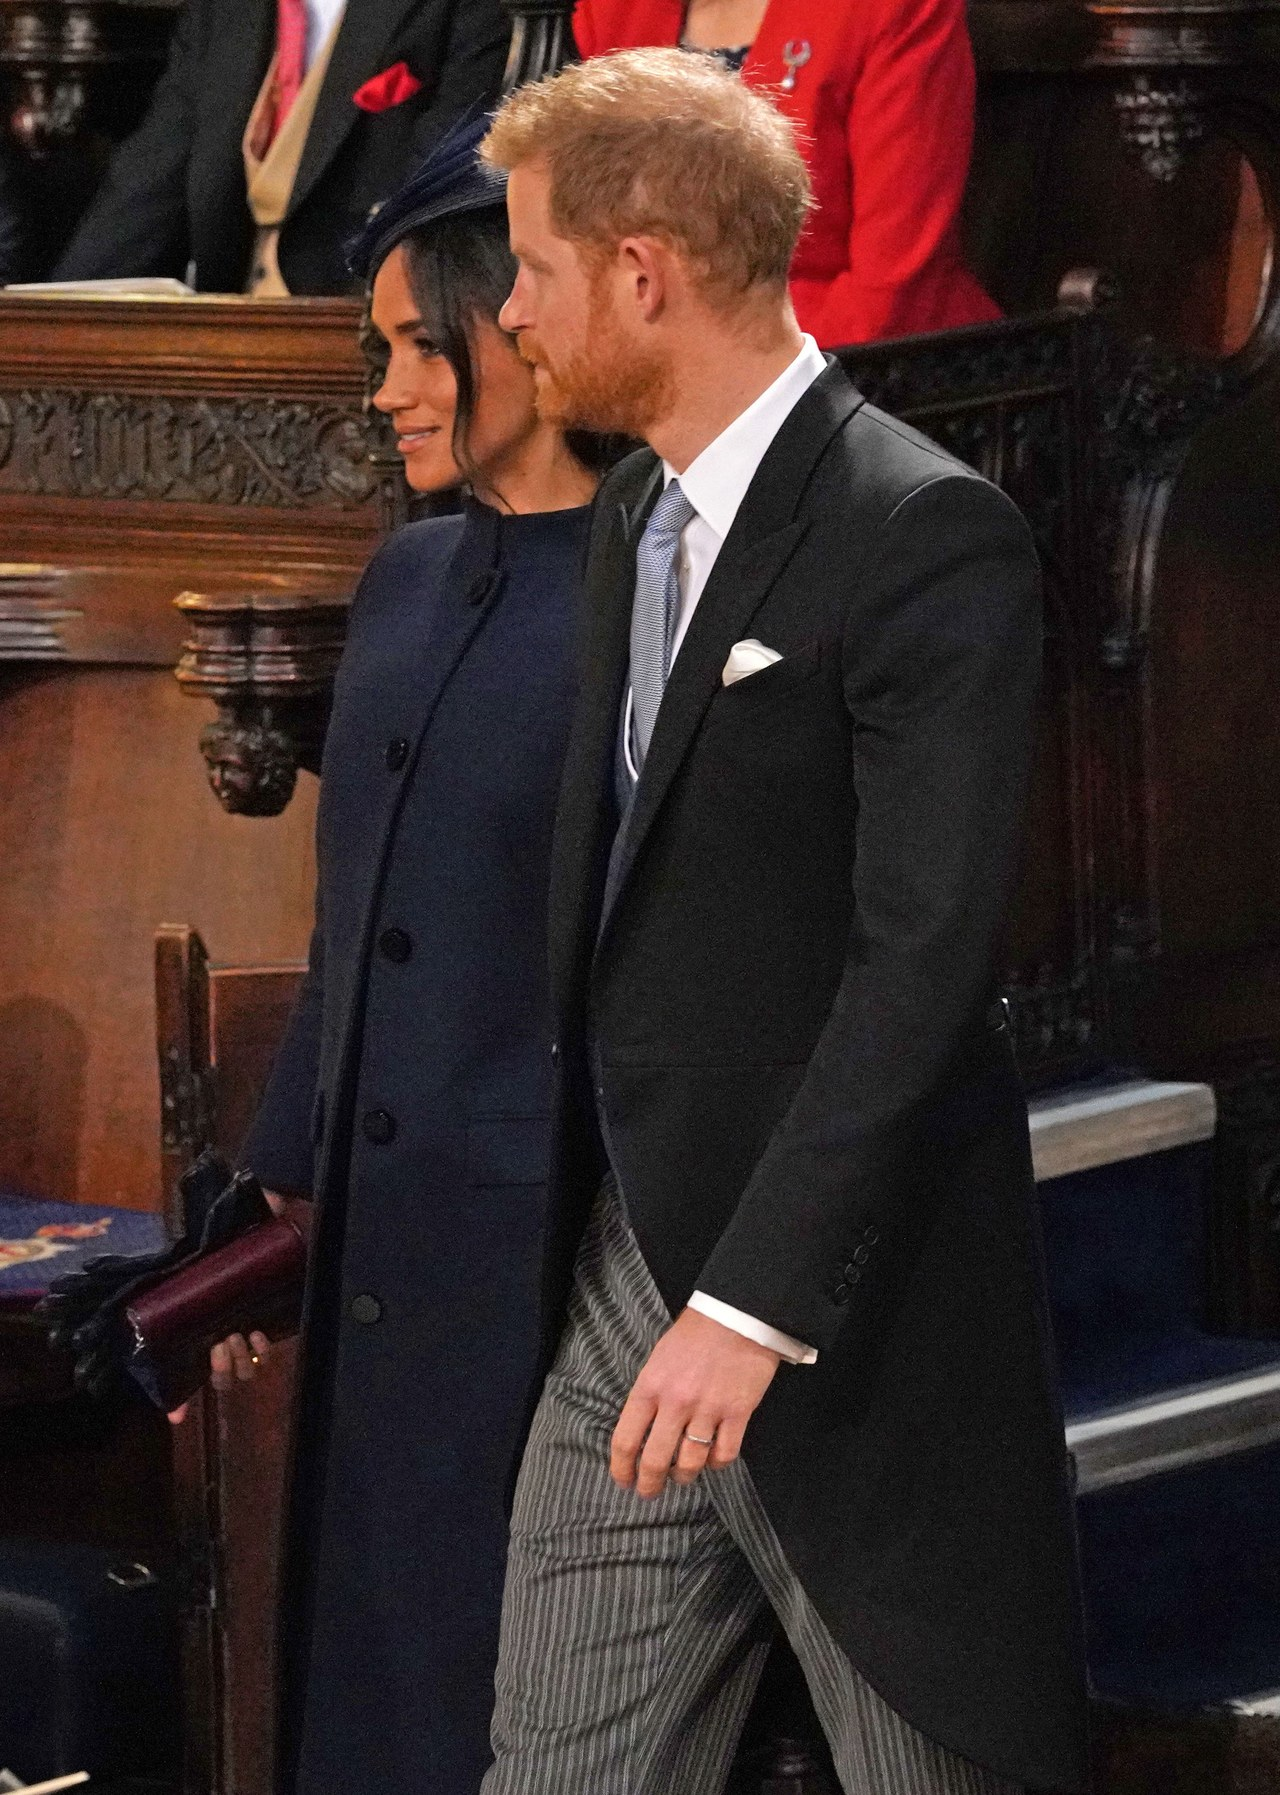 Meghan & Harry Couldn't Be More Adorable at Princess Eugenie's Wedding 5